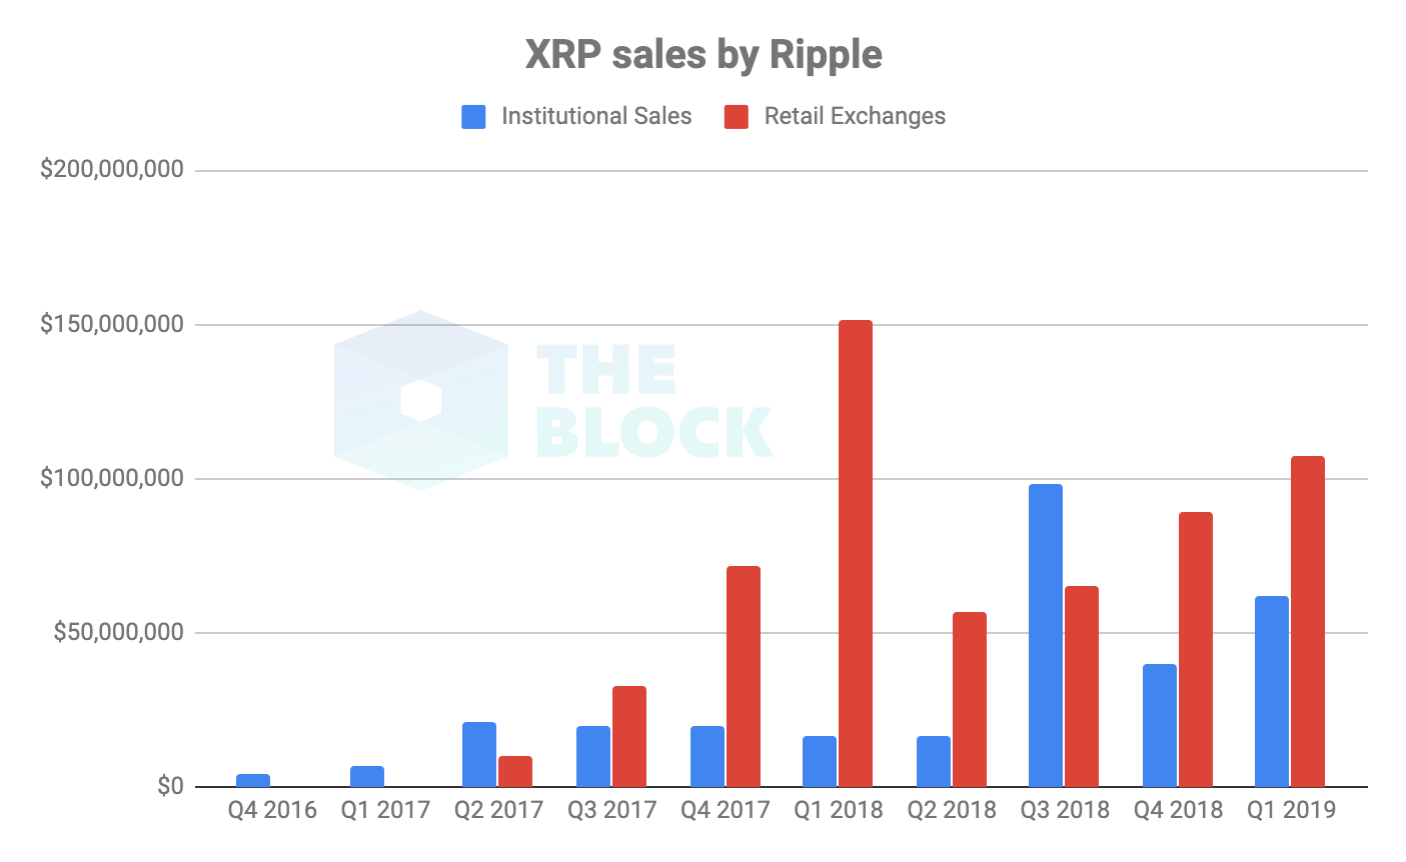 XRP sales by year